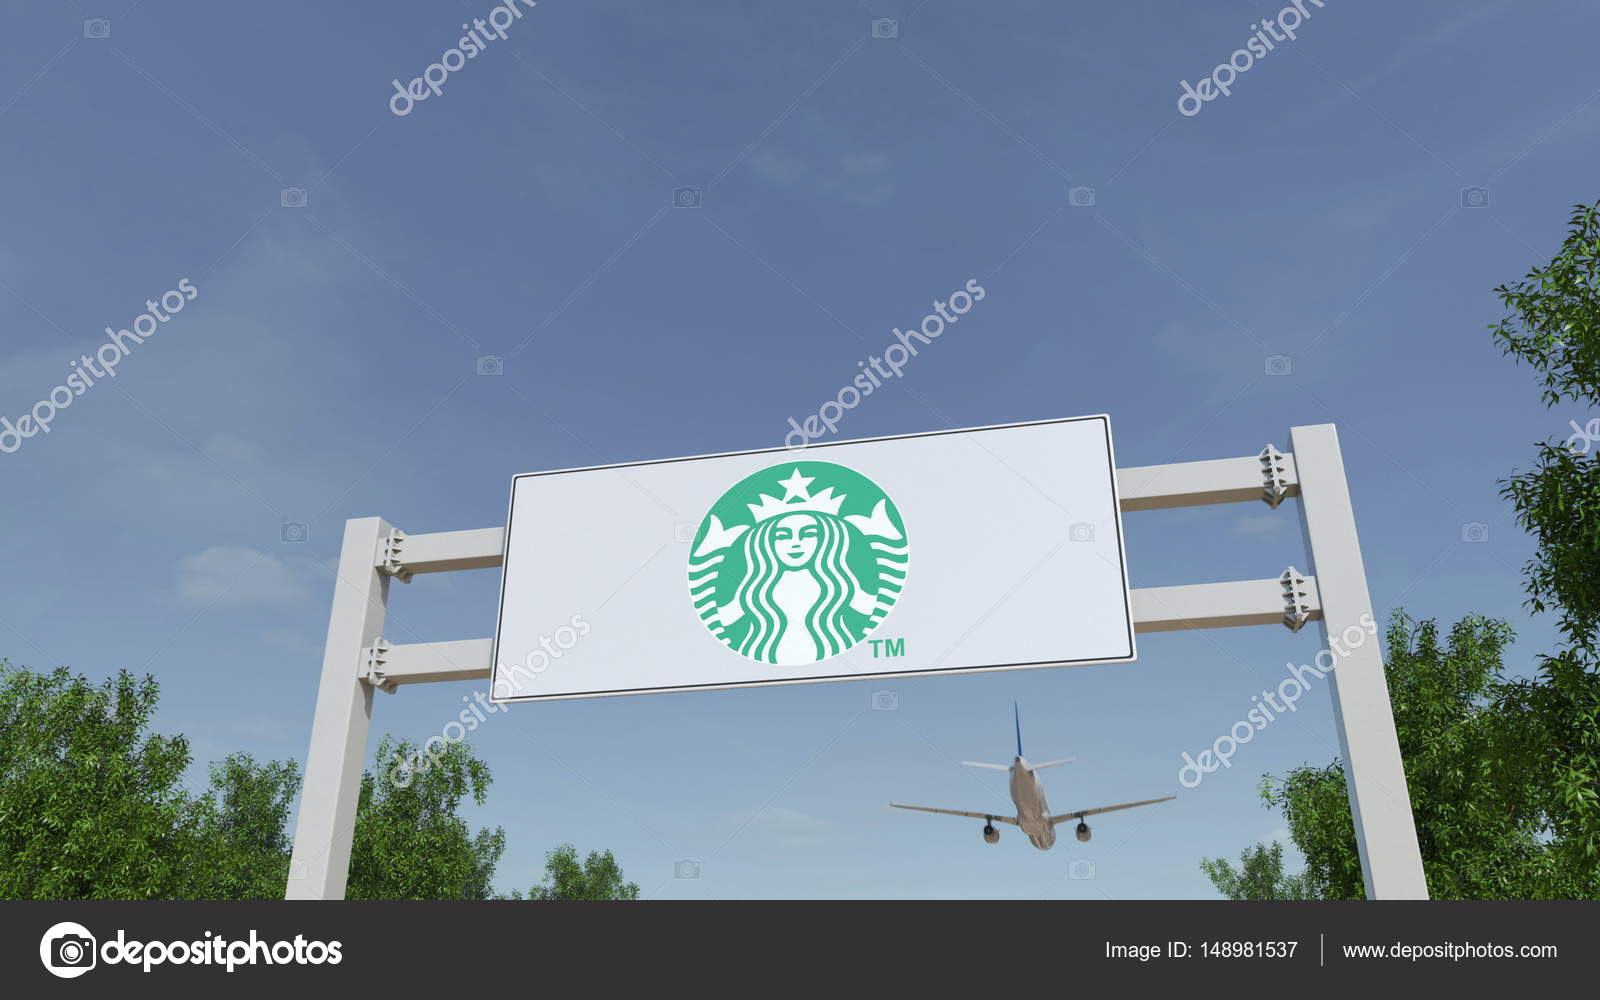 Airplane Flying Over Advertising Billboard With Starbucks